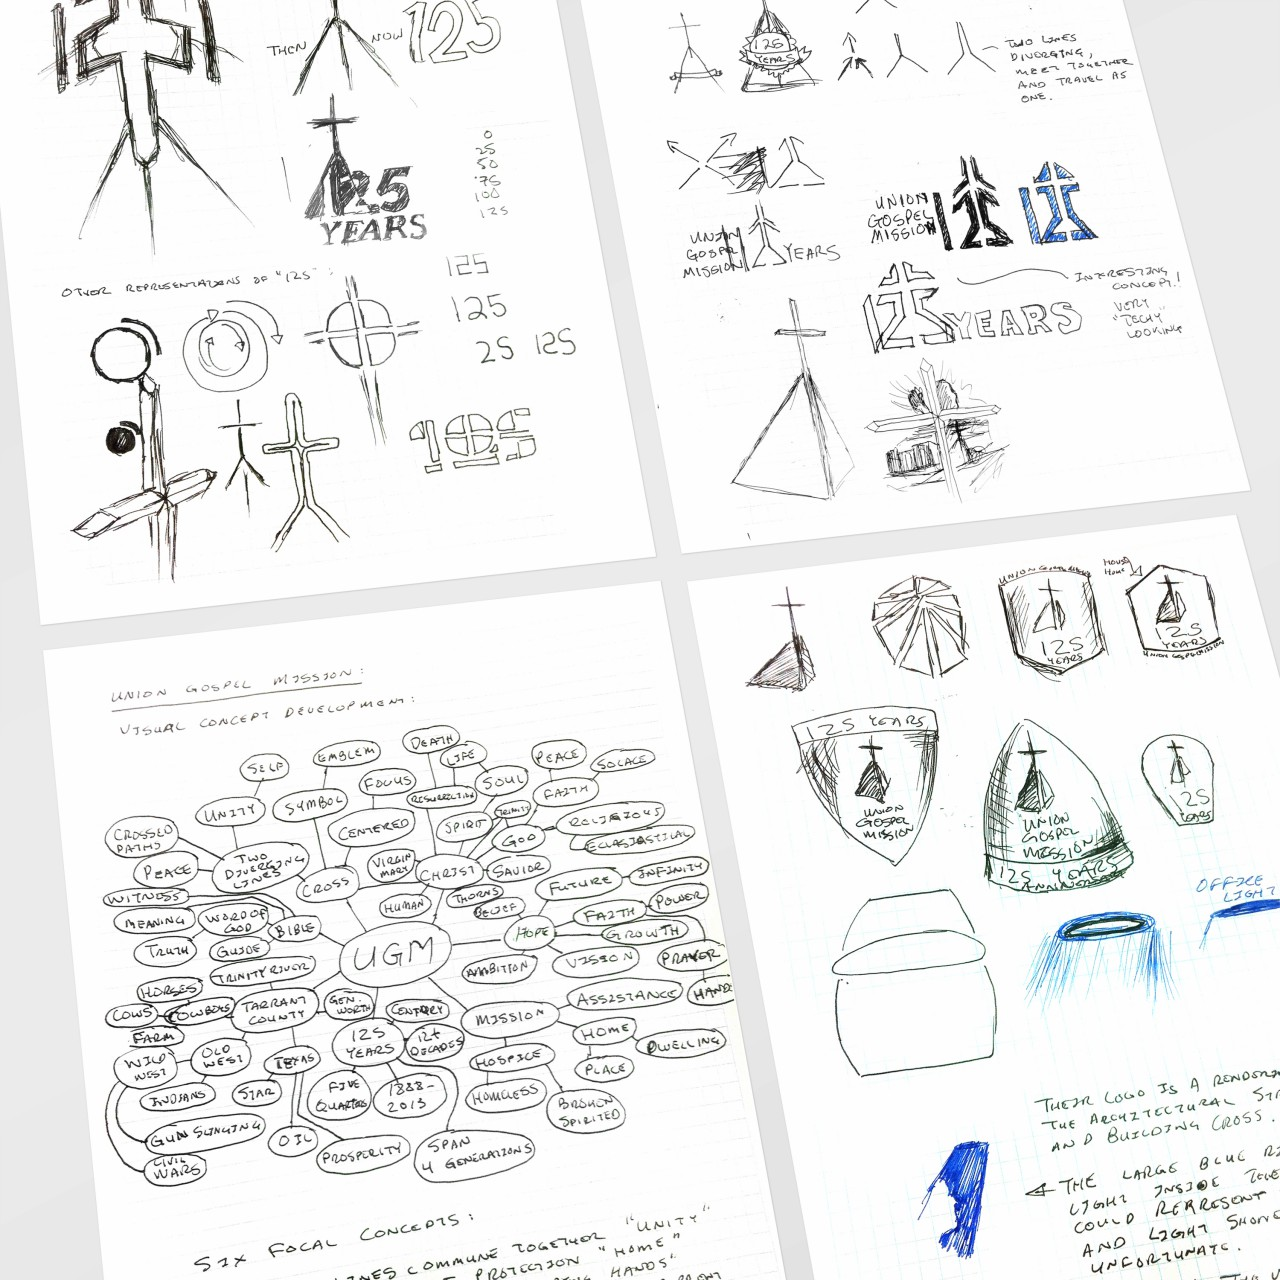 Image of Union Gospel Mission 125th Anniversary logo idea sketches